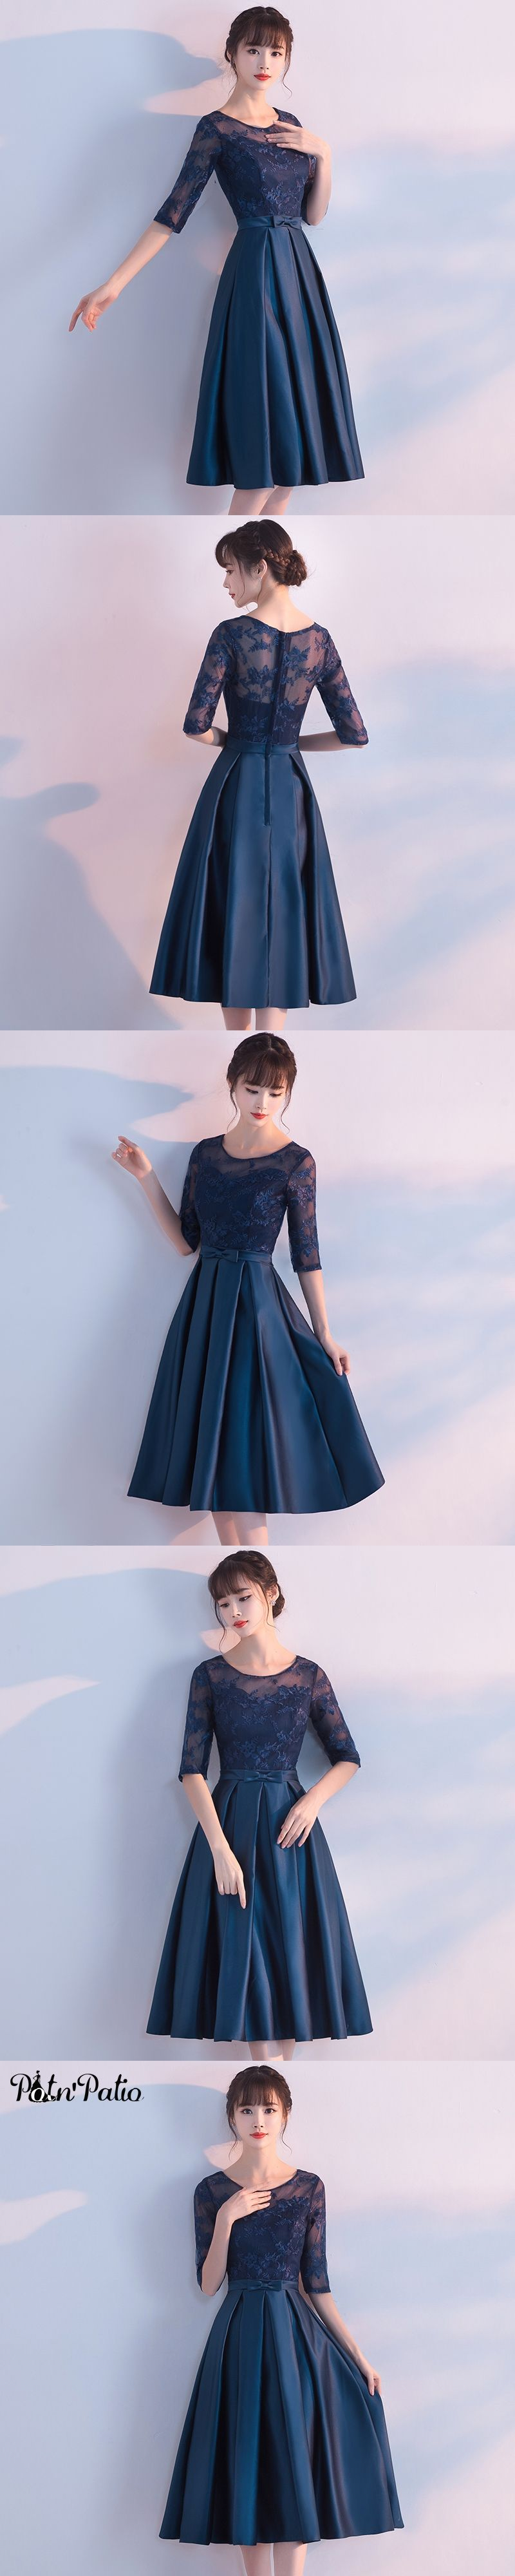 Potnupatio aline tea length medium long navy blue bridesmaid dress